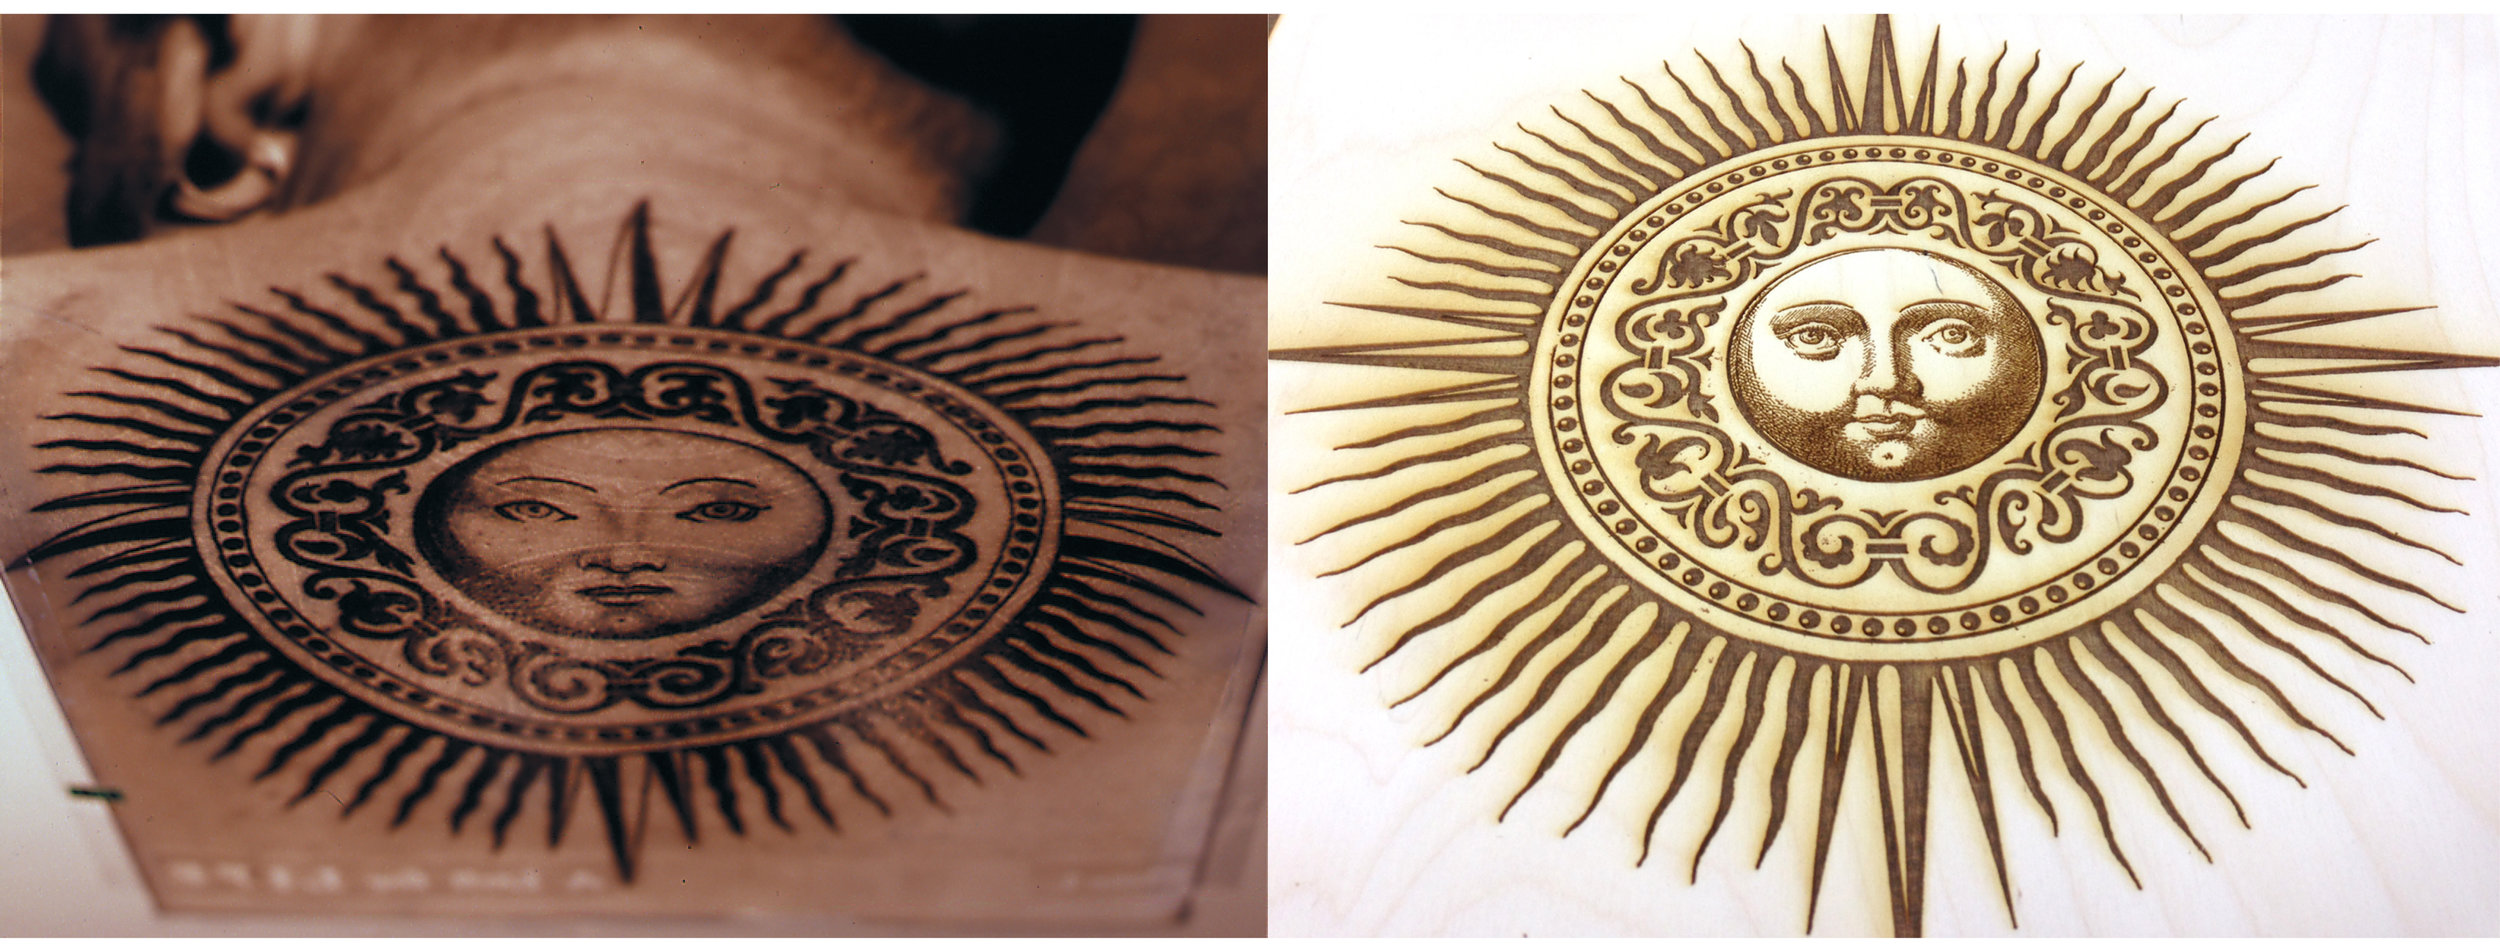 Original photographic print next to etched wood plate - 23 years apart